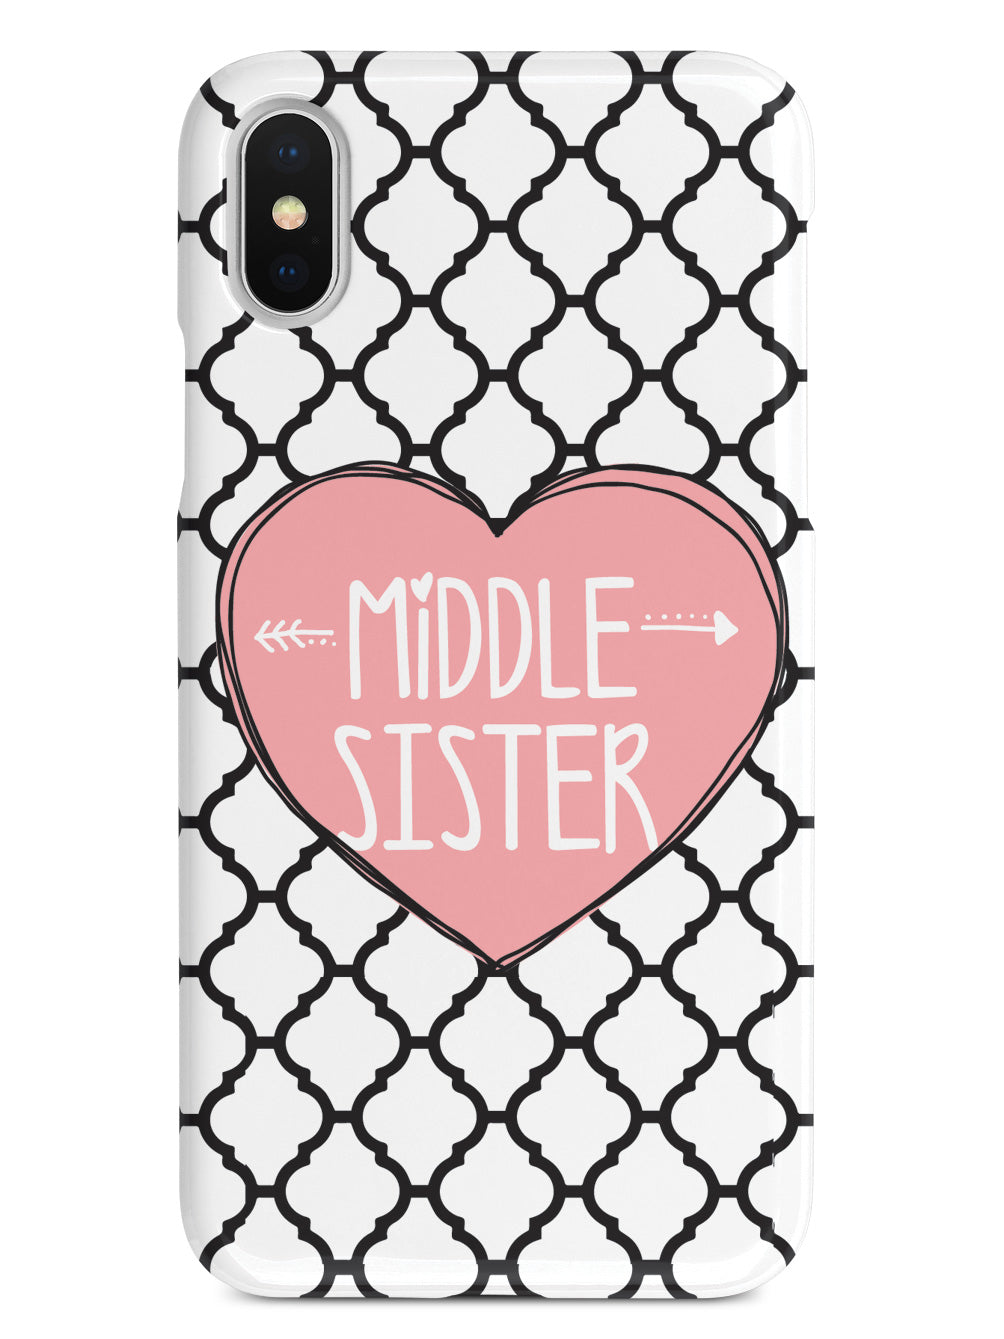 Sisterly Love - Middle Sister - Moroccan Case